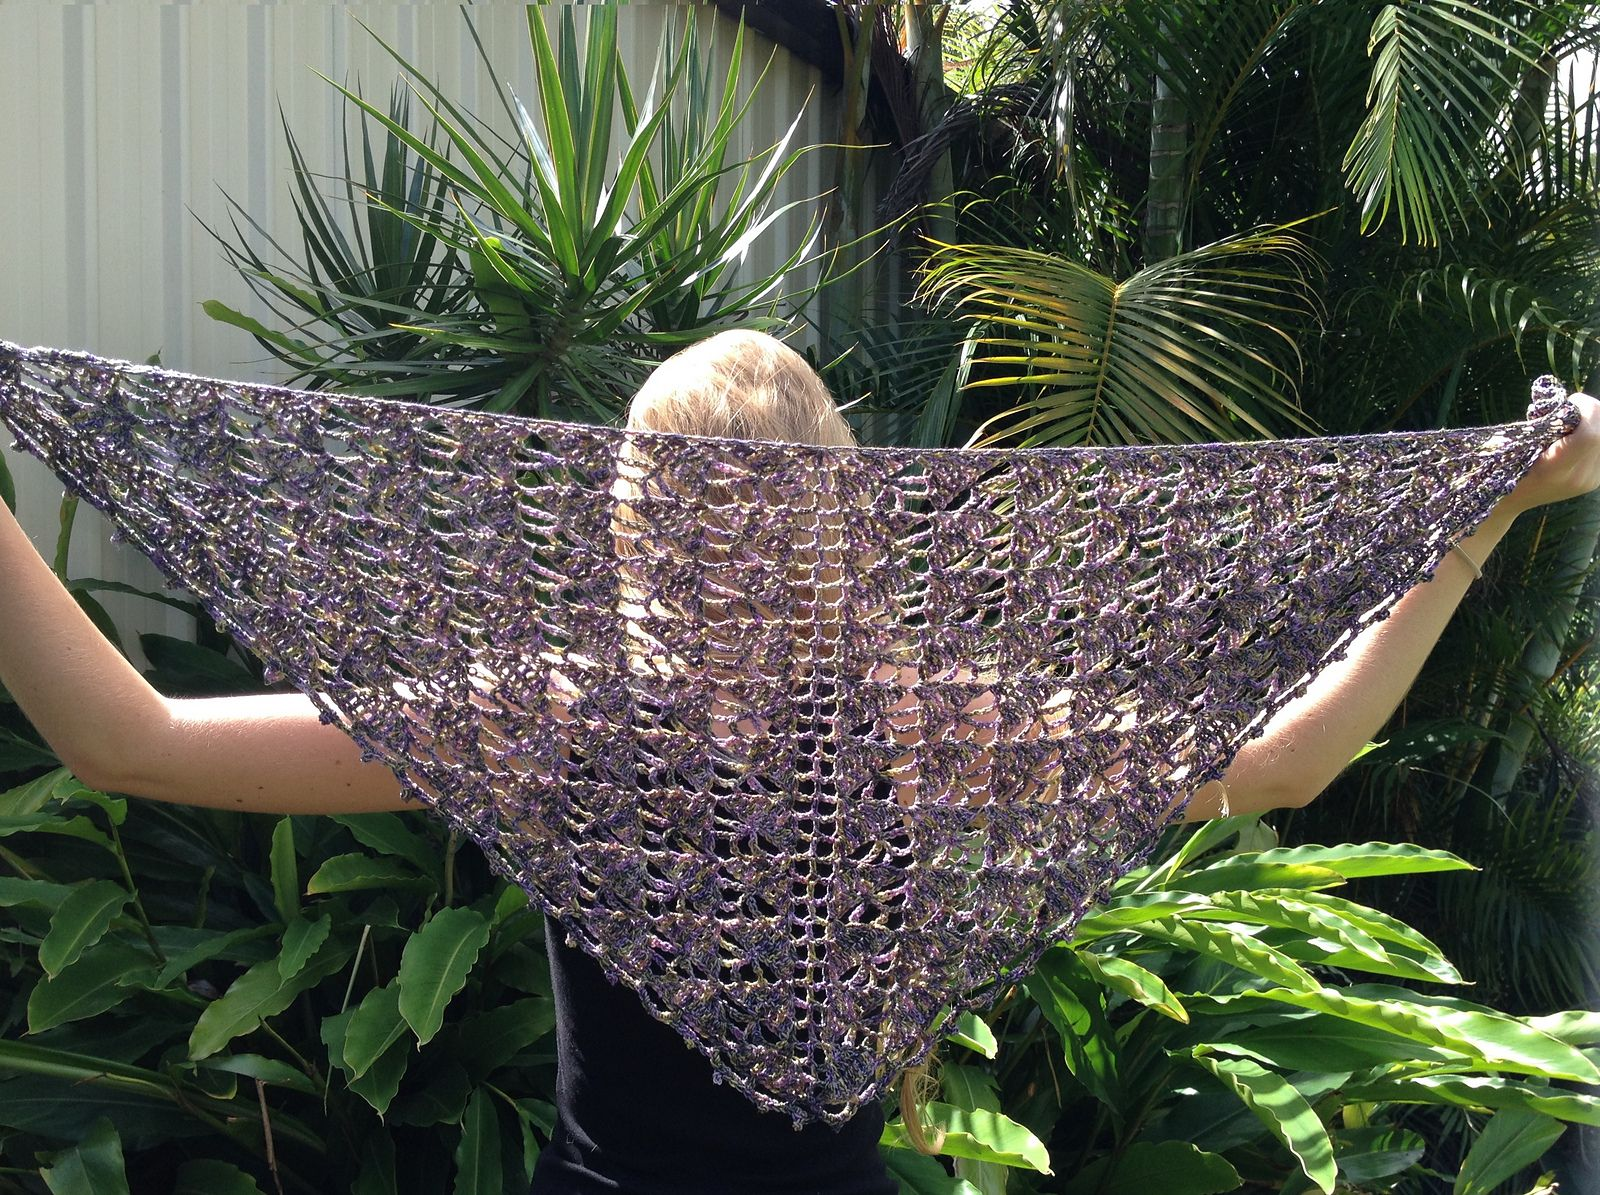 Ravelry: glasshouseleah's Staccato Shawl - pattern available in Inside Crochet and on Etsy